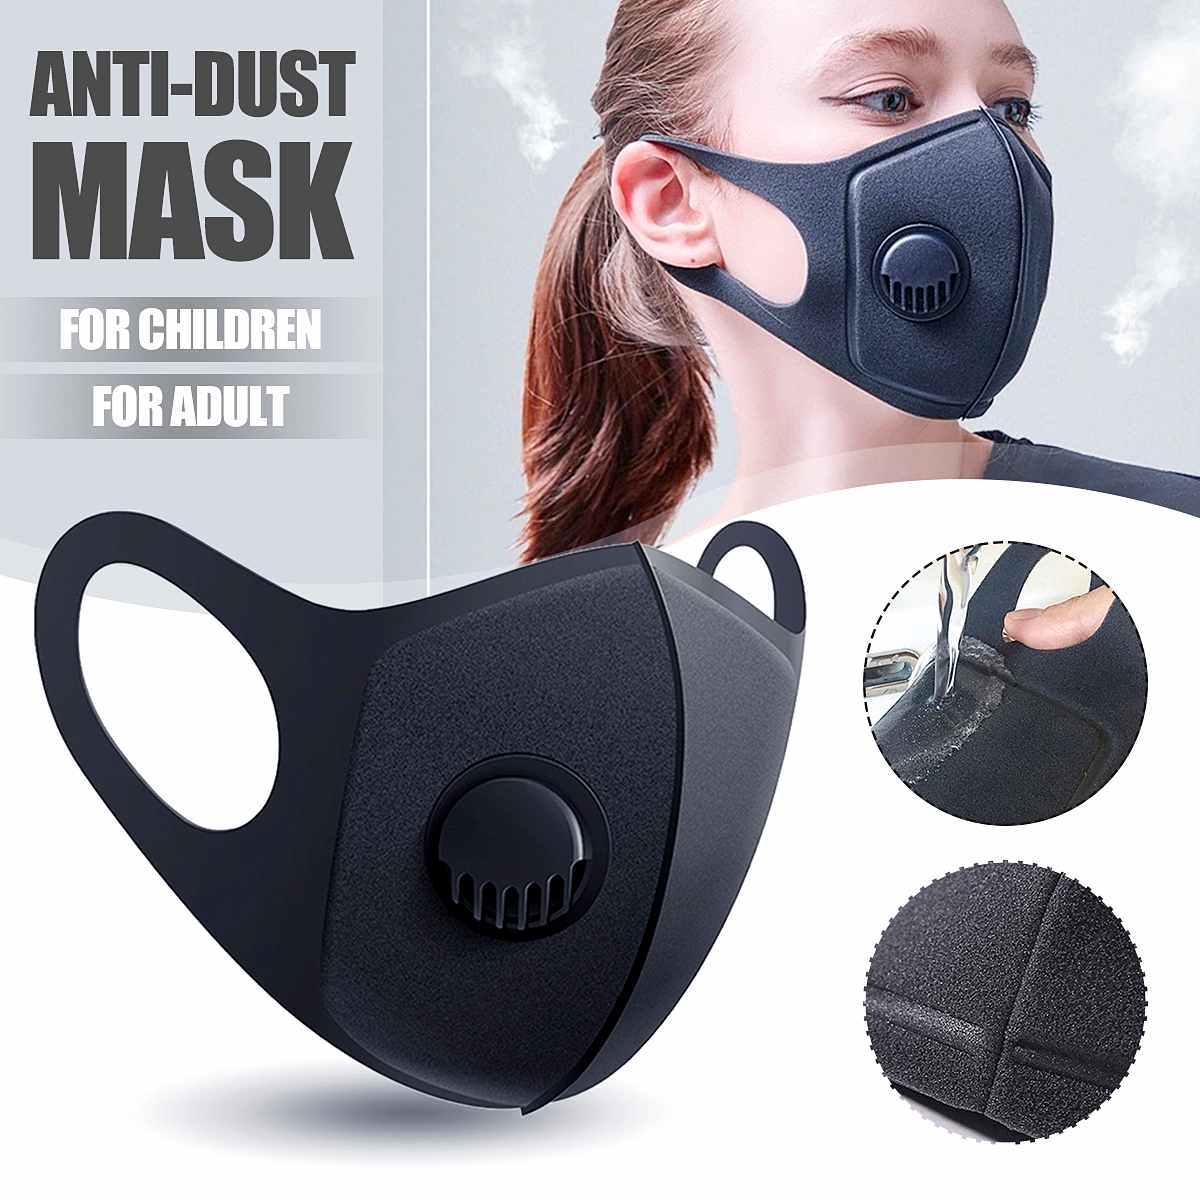 Unisex Adult Children Mouth Masks PM2.5 Dustproof Face Mask Outdoor Mask Travel Protection Anti Smog Particulate Mask Reusable